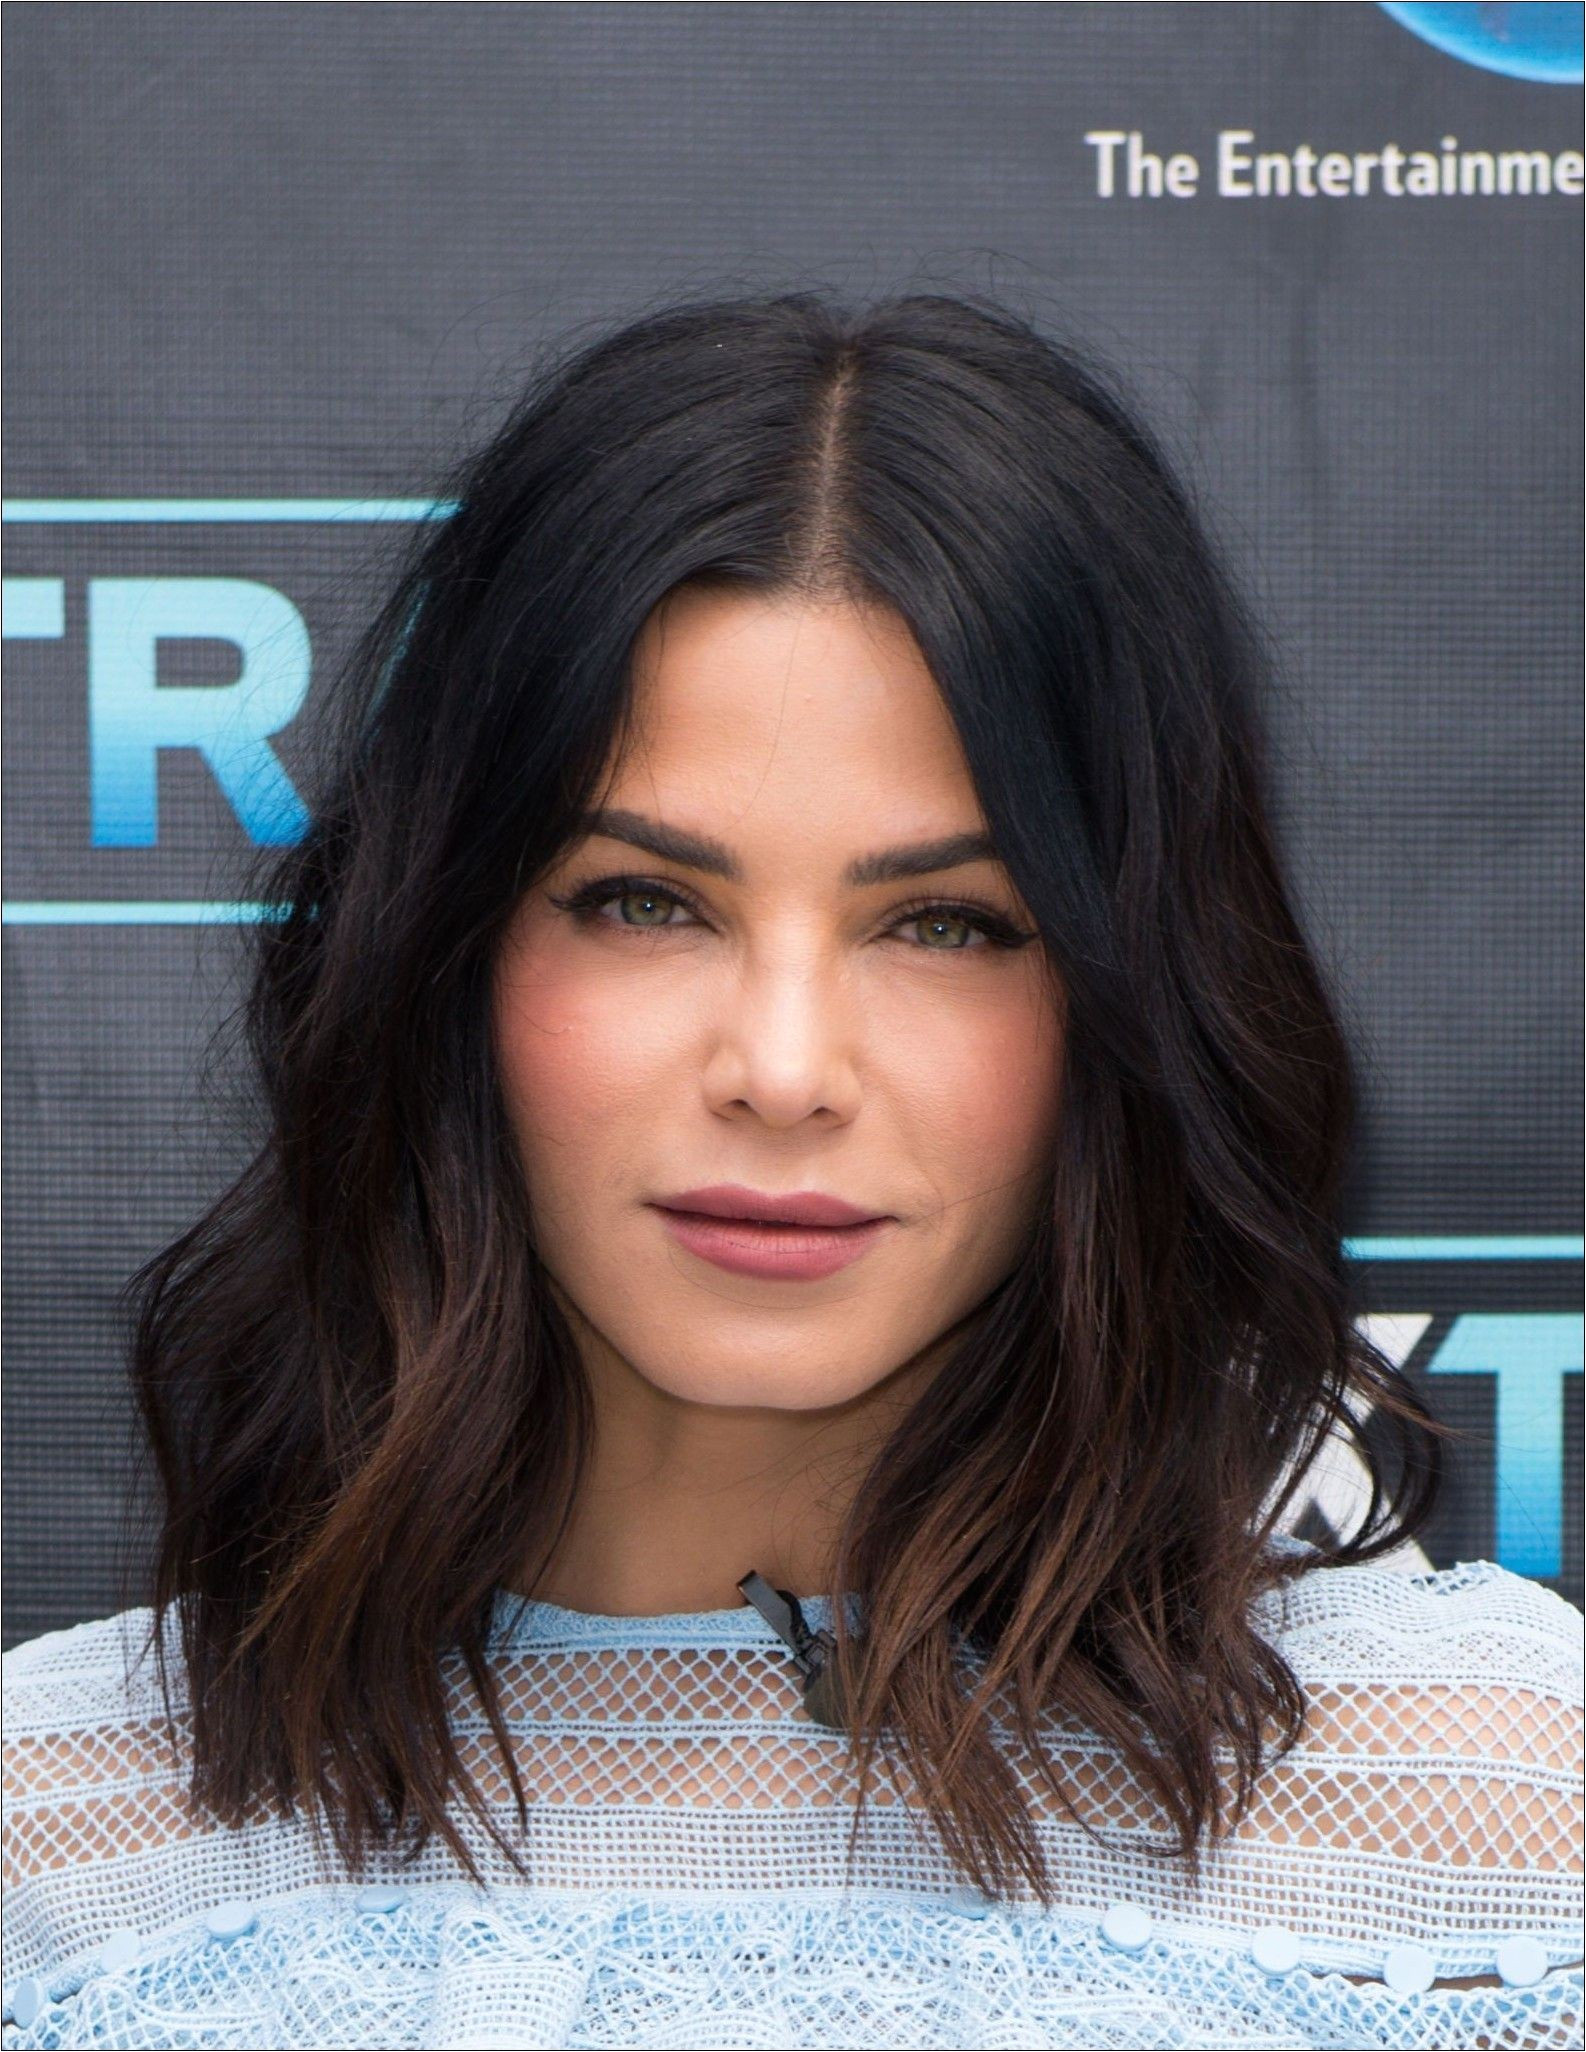 Hairstyles Name for Girls Luxury Hairstyles for Girls with Short Hair Awesome Cute Hairstyles for